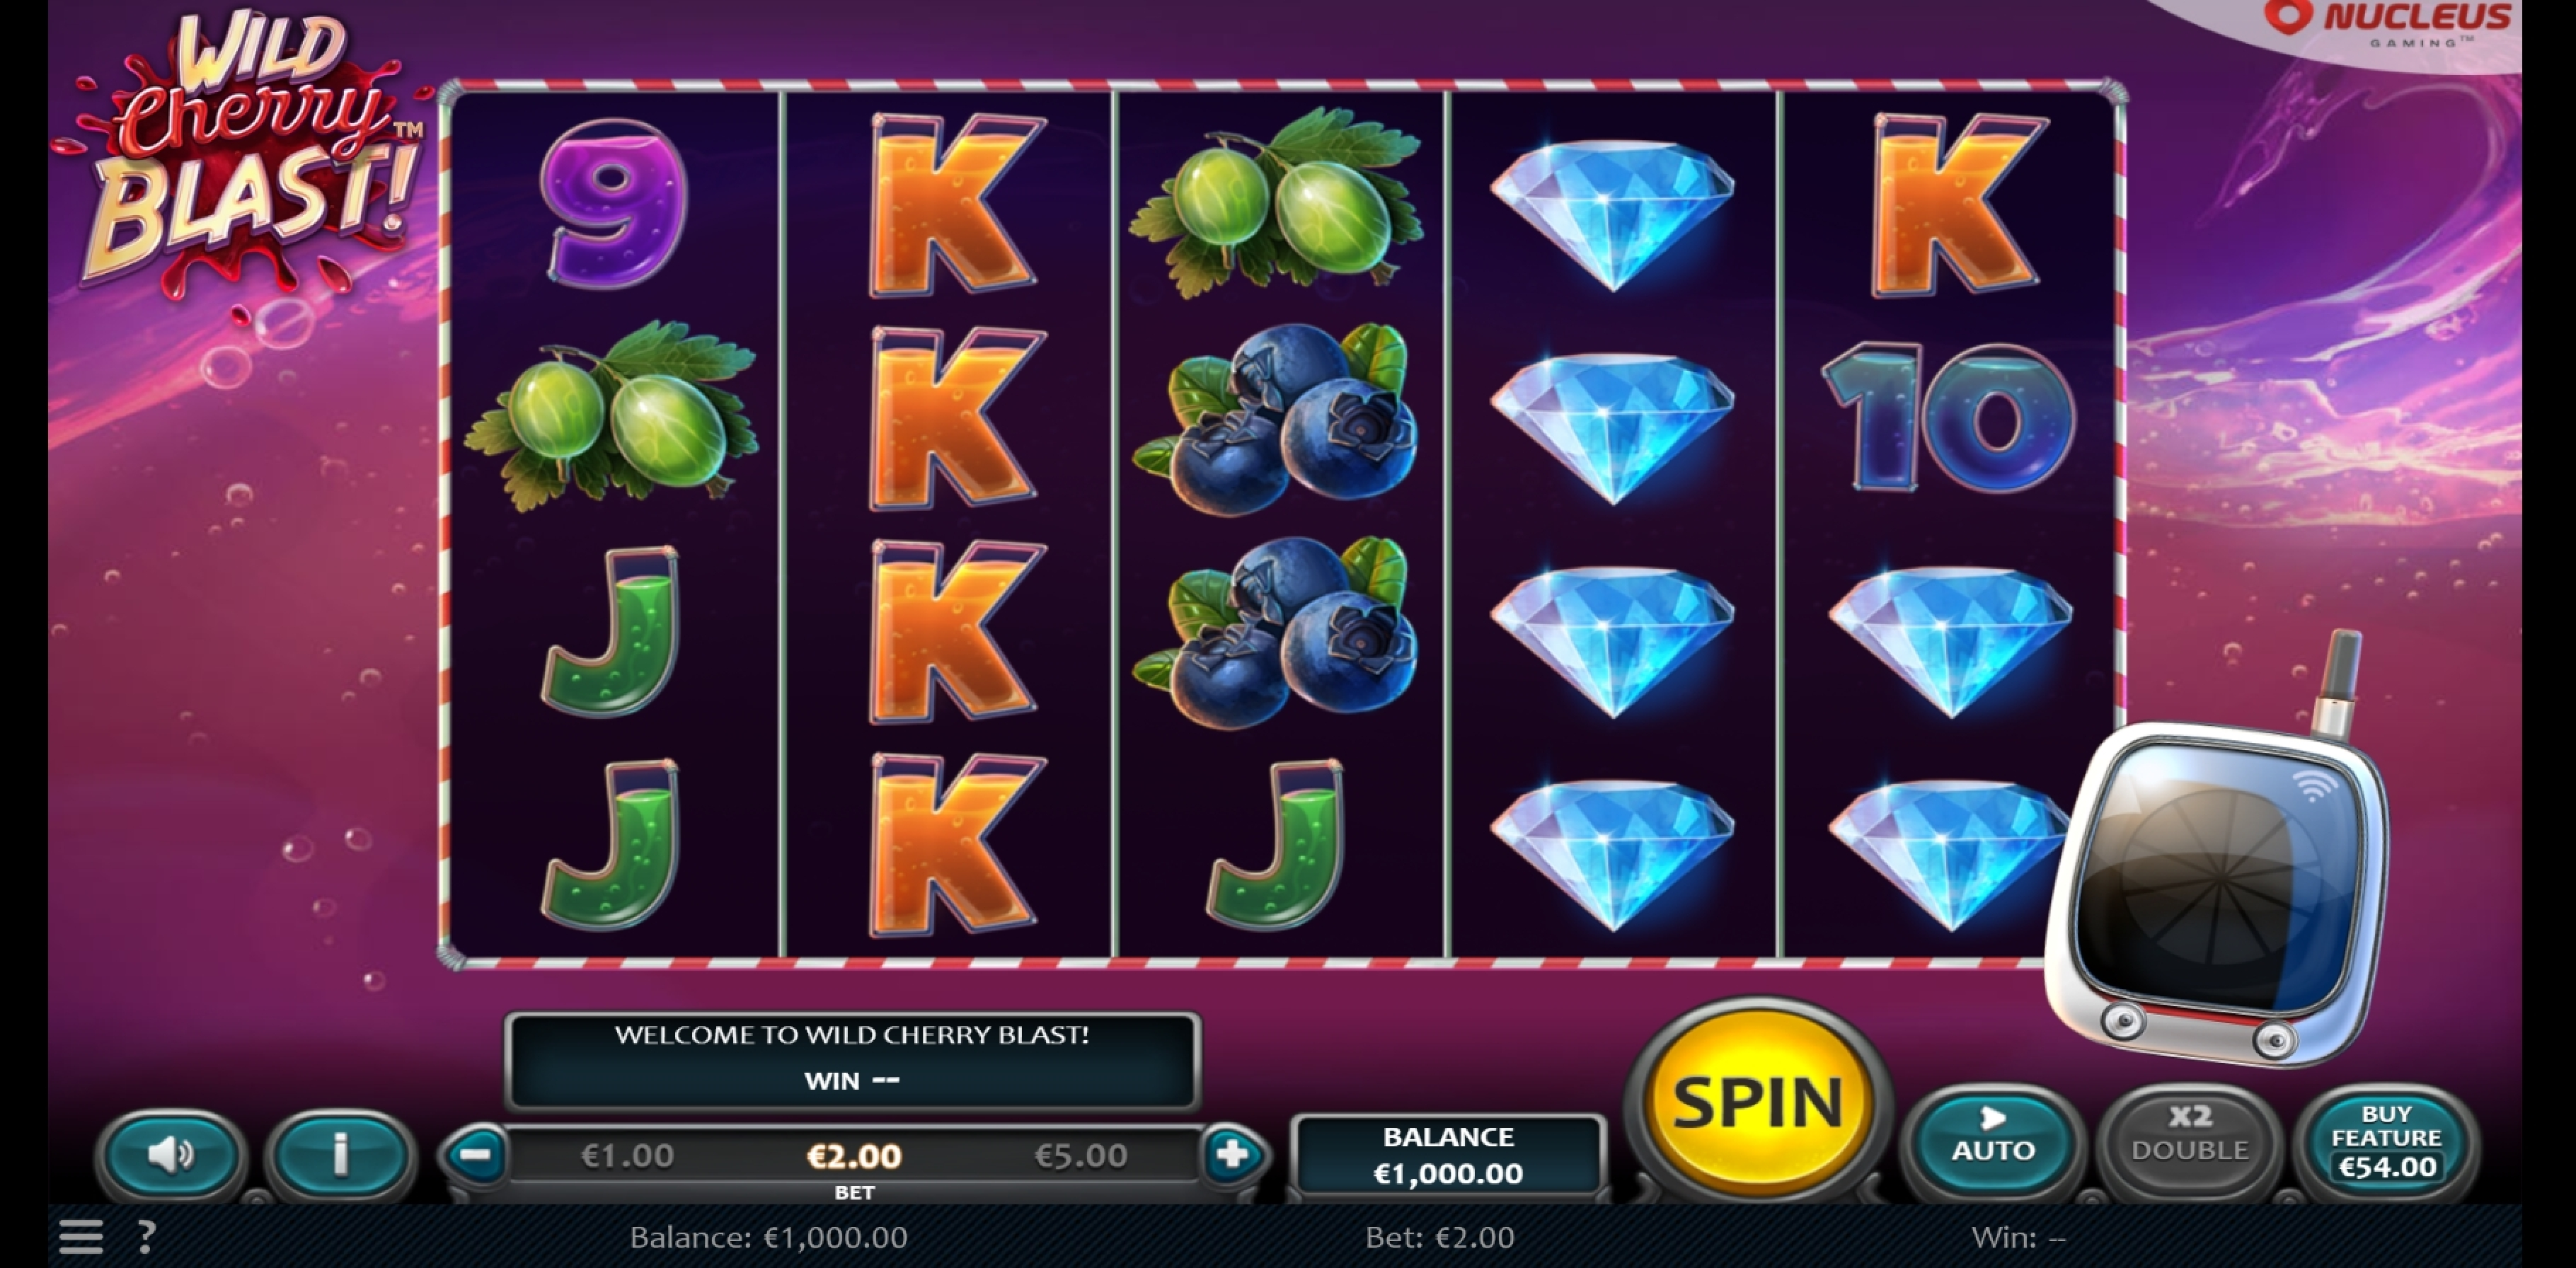 Reels in Wild Cherry Blast Slot Game by Nucleus Gaming